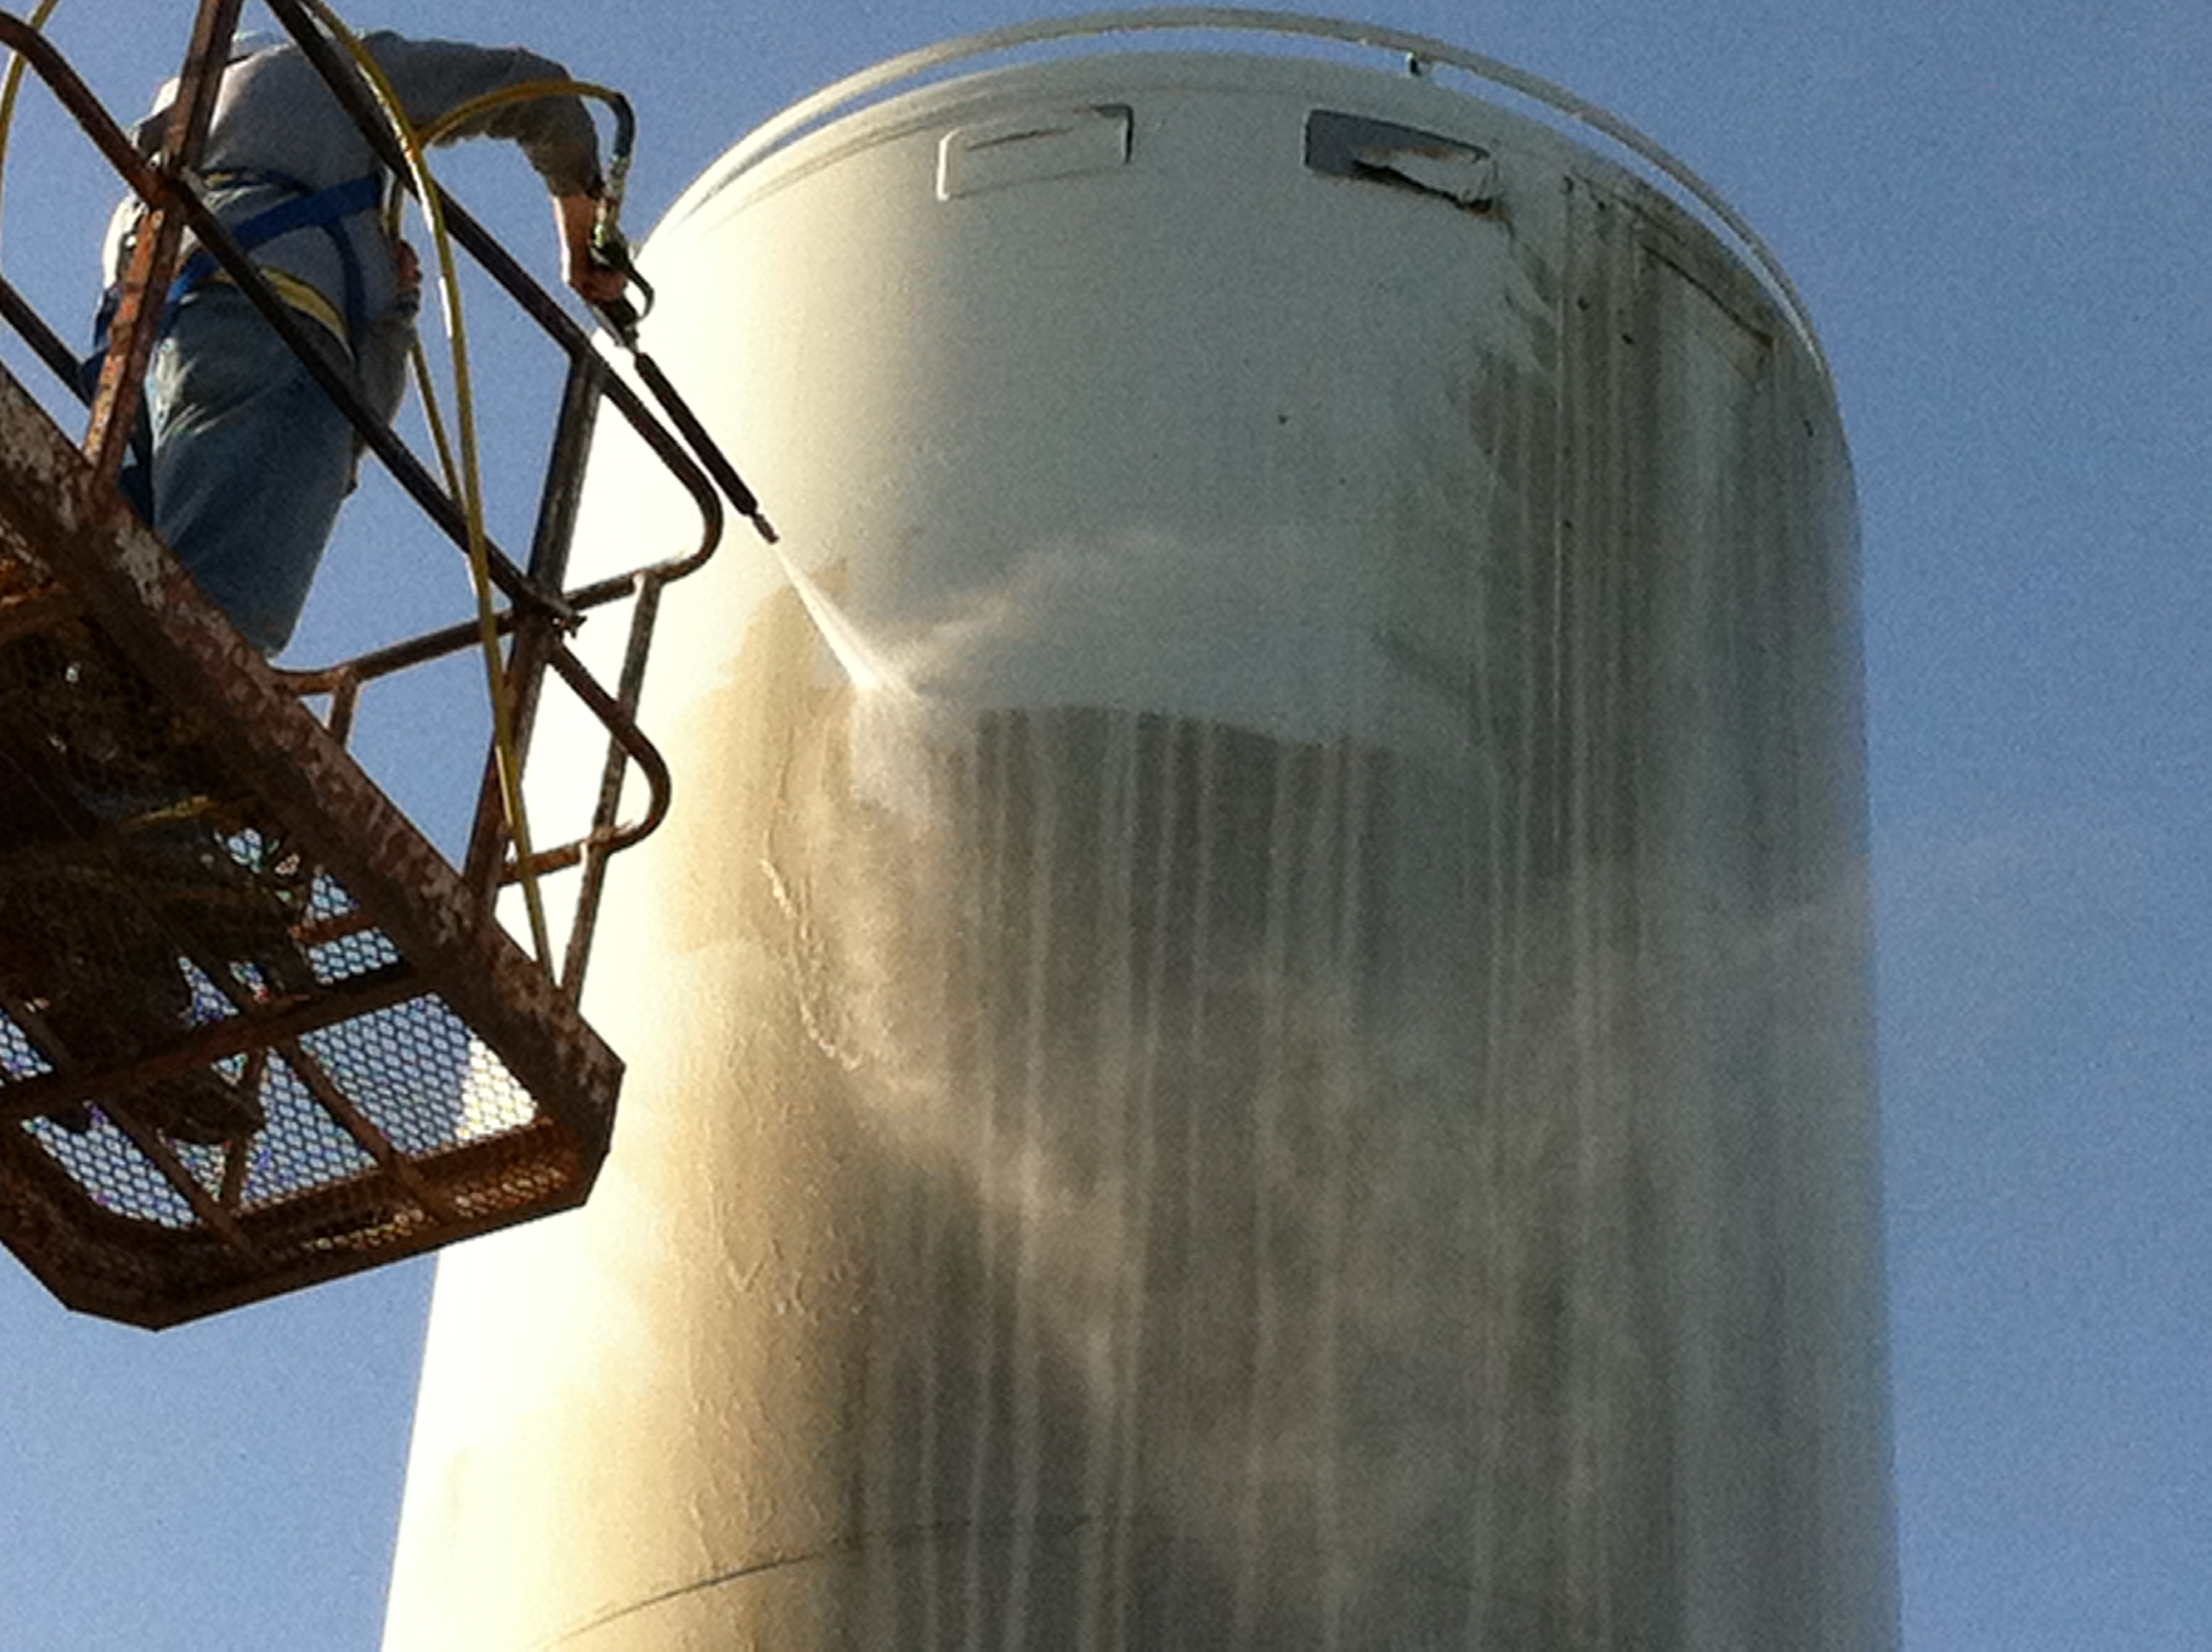 Industrial Pressure Washing services Lexington KY